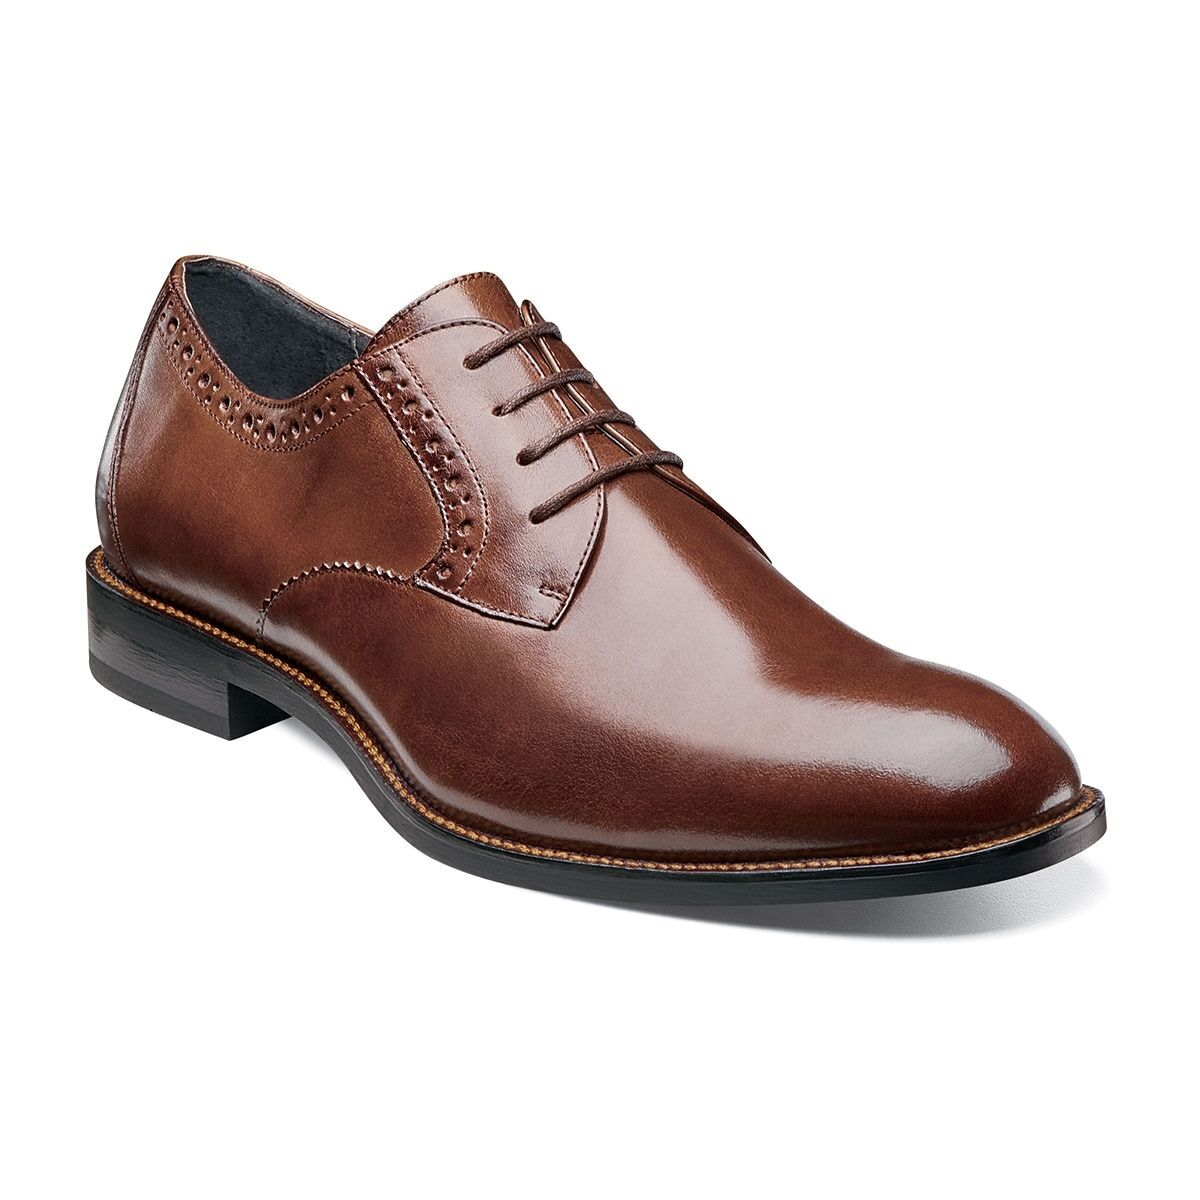 Stacy Adams Hombre Coñac Graham Dedo Pie Normal Cuero con Cordones Oxford